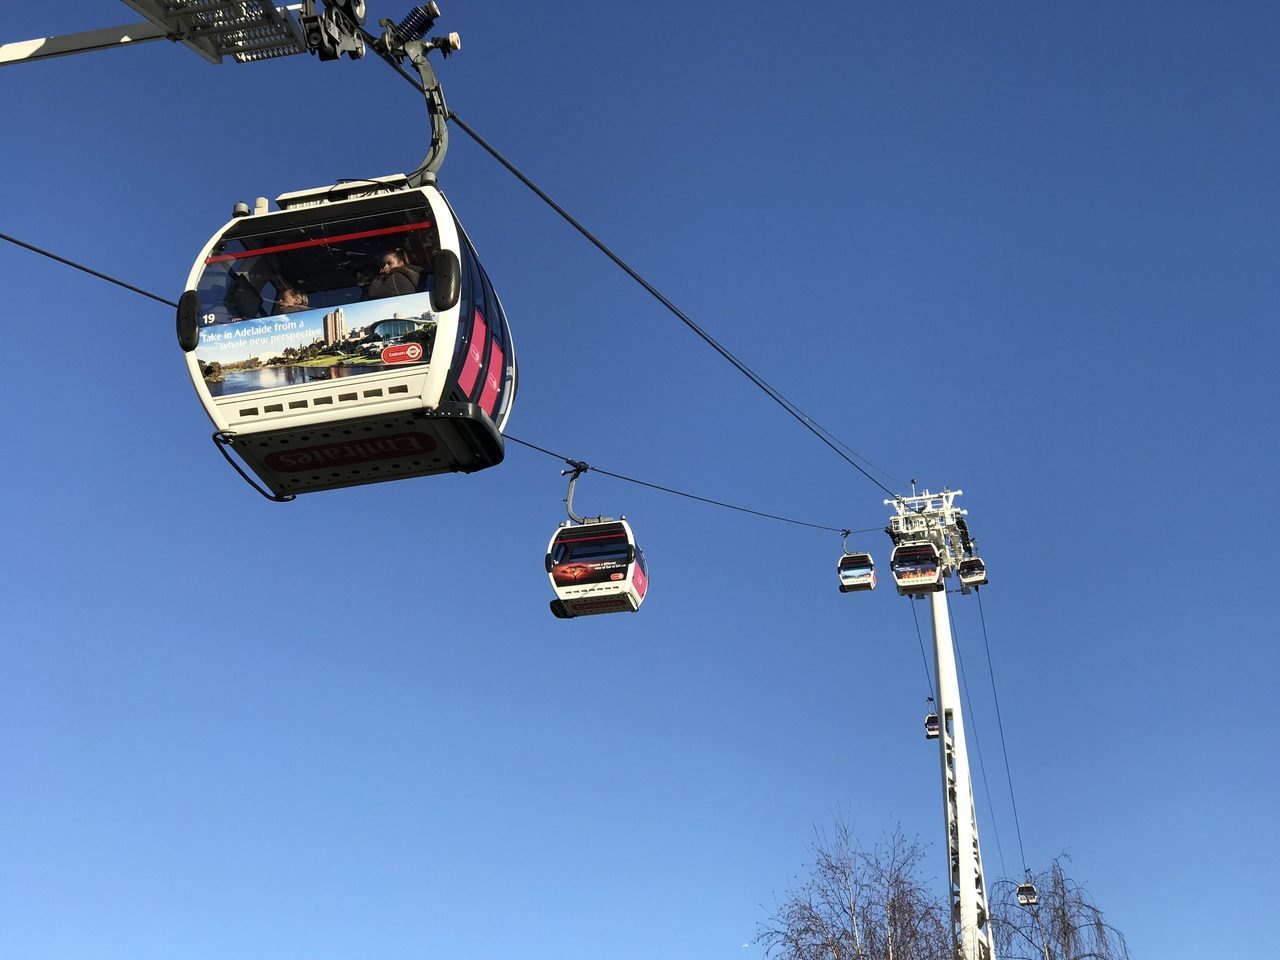 Emirates cable car, London